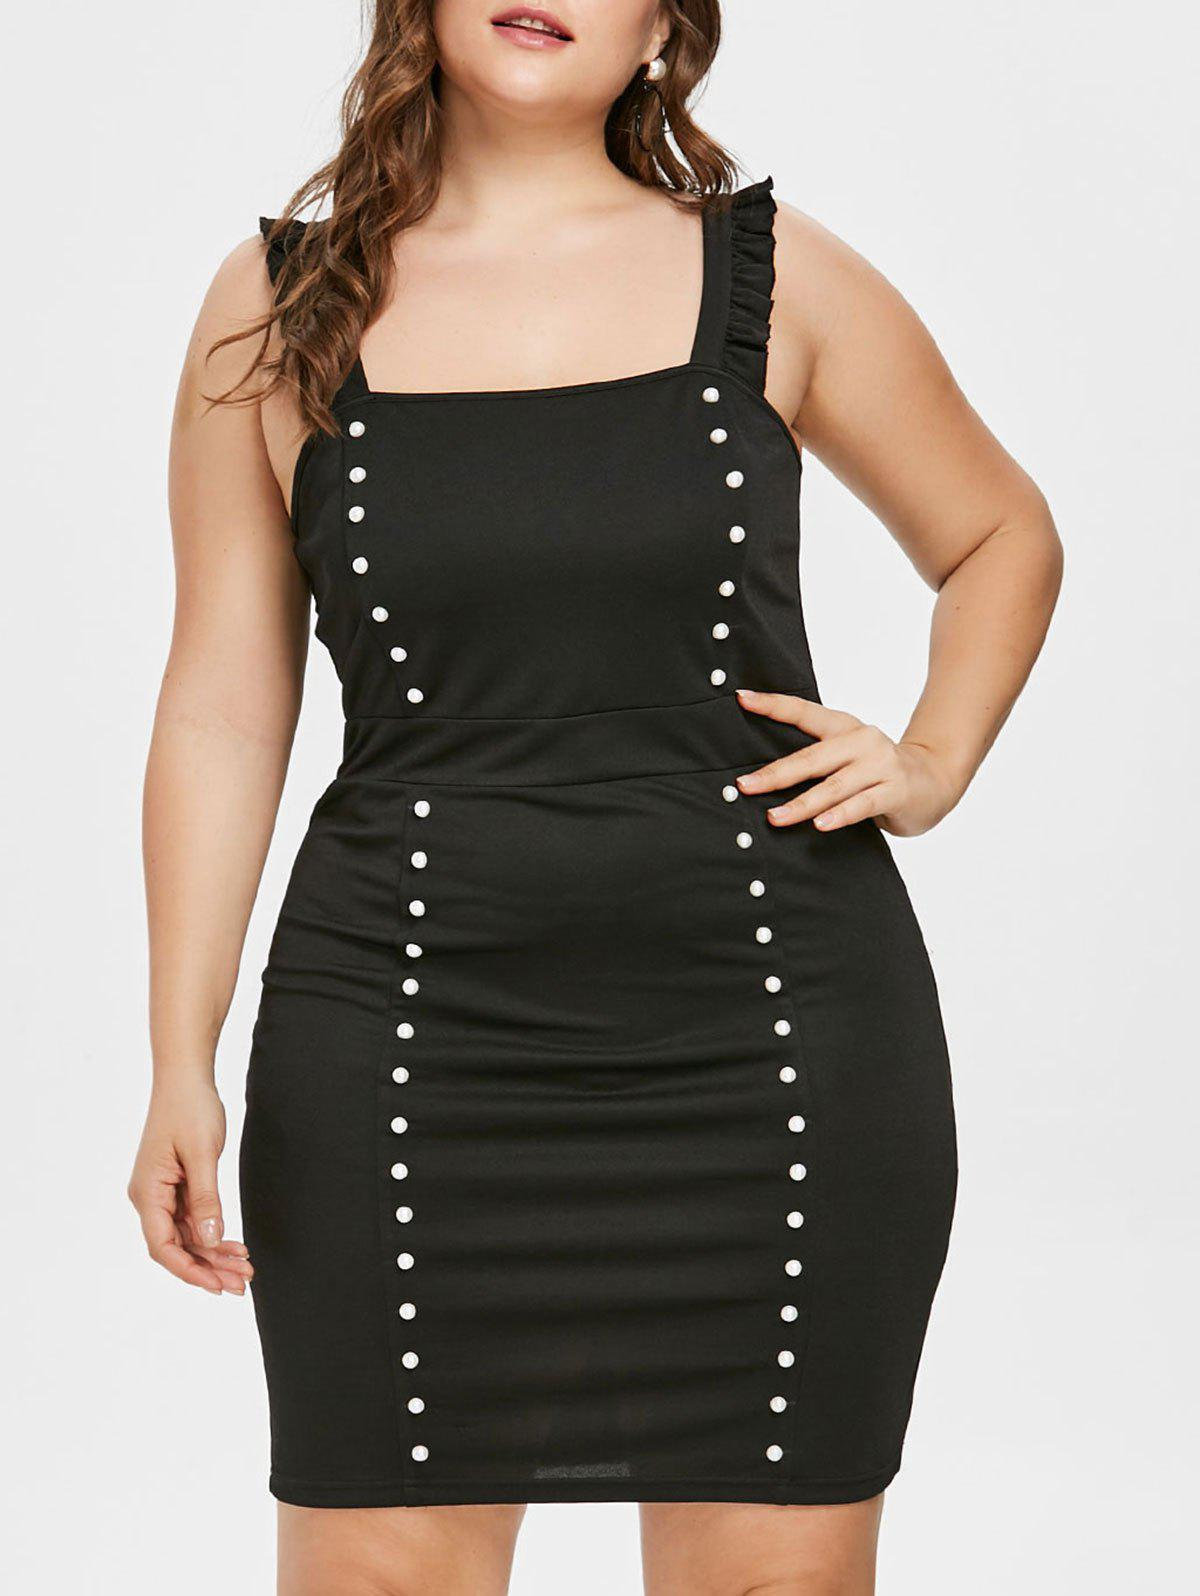 Plus Size Sleeveless Party Dress - BLACK 2X